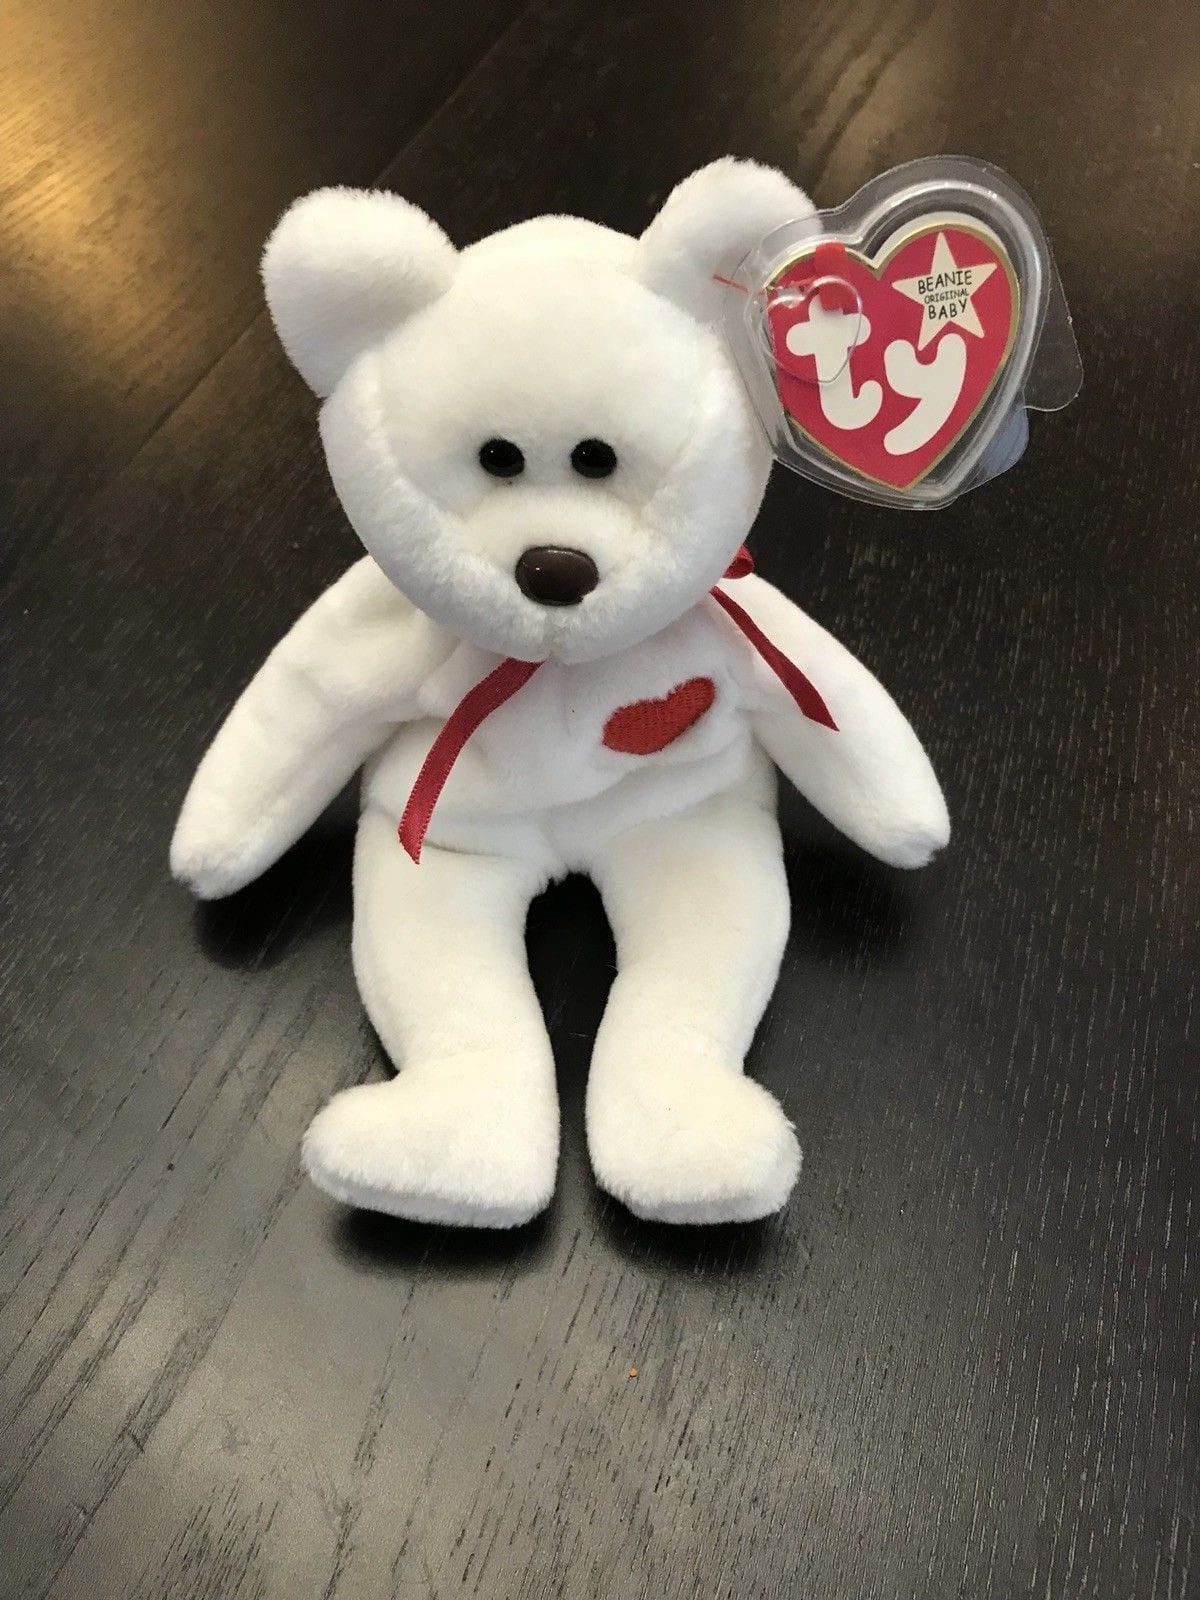 20 Valuable Beanie Babies That Are Worth A Fortune e49a17f4a40